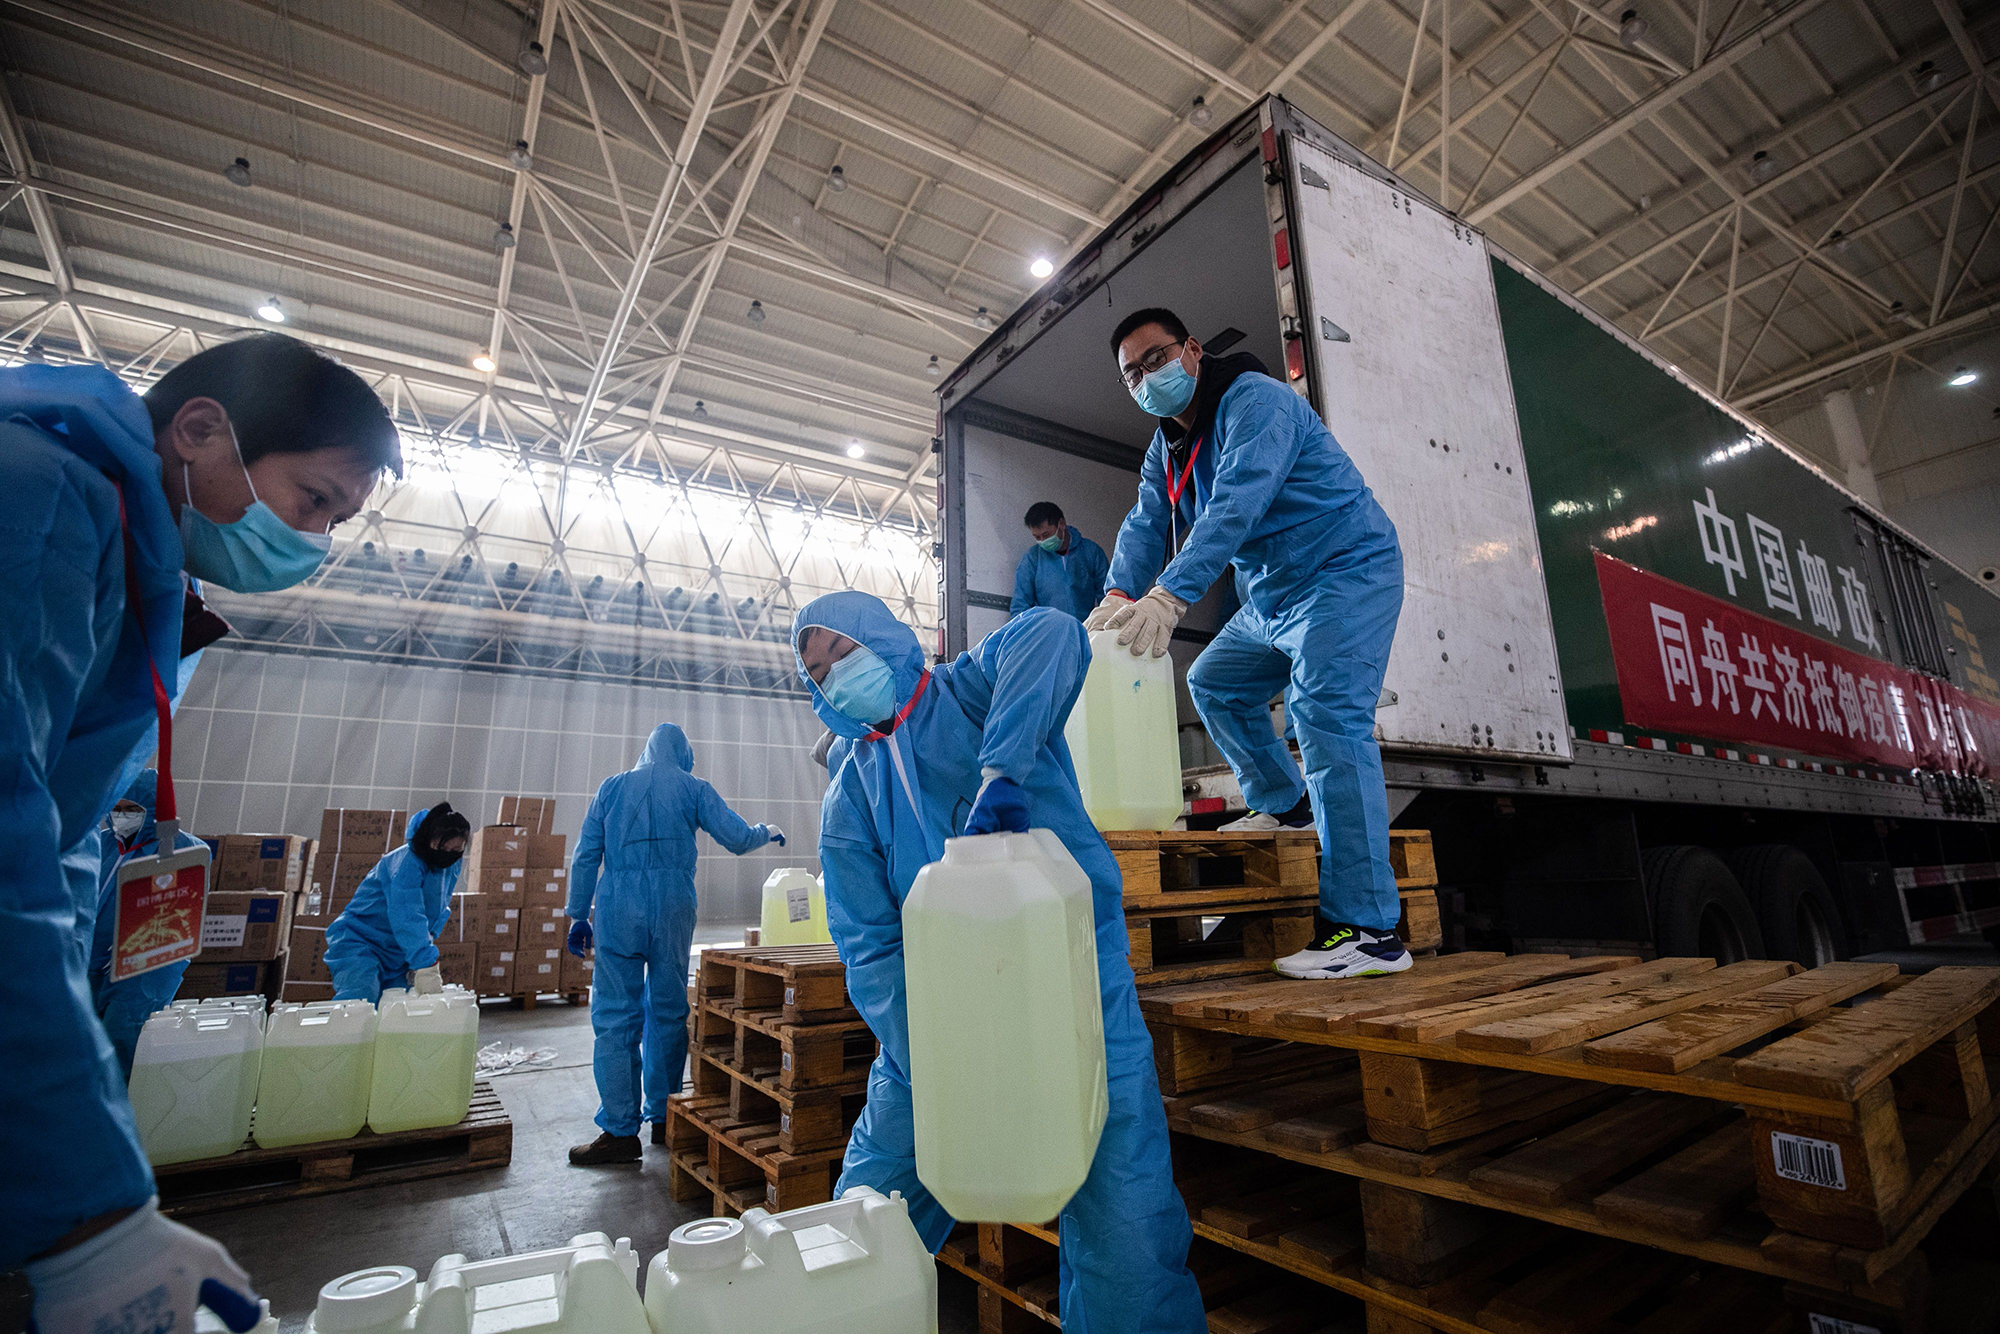 Staff members and and volunteers wearing protective face masks transfer medical supplies at a warehouse converted into a makeshift hospital in Wuhan on February 4.